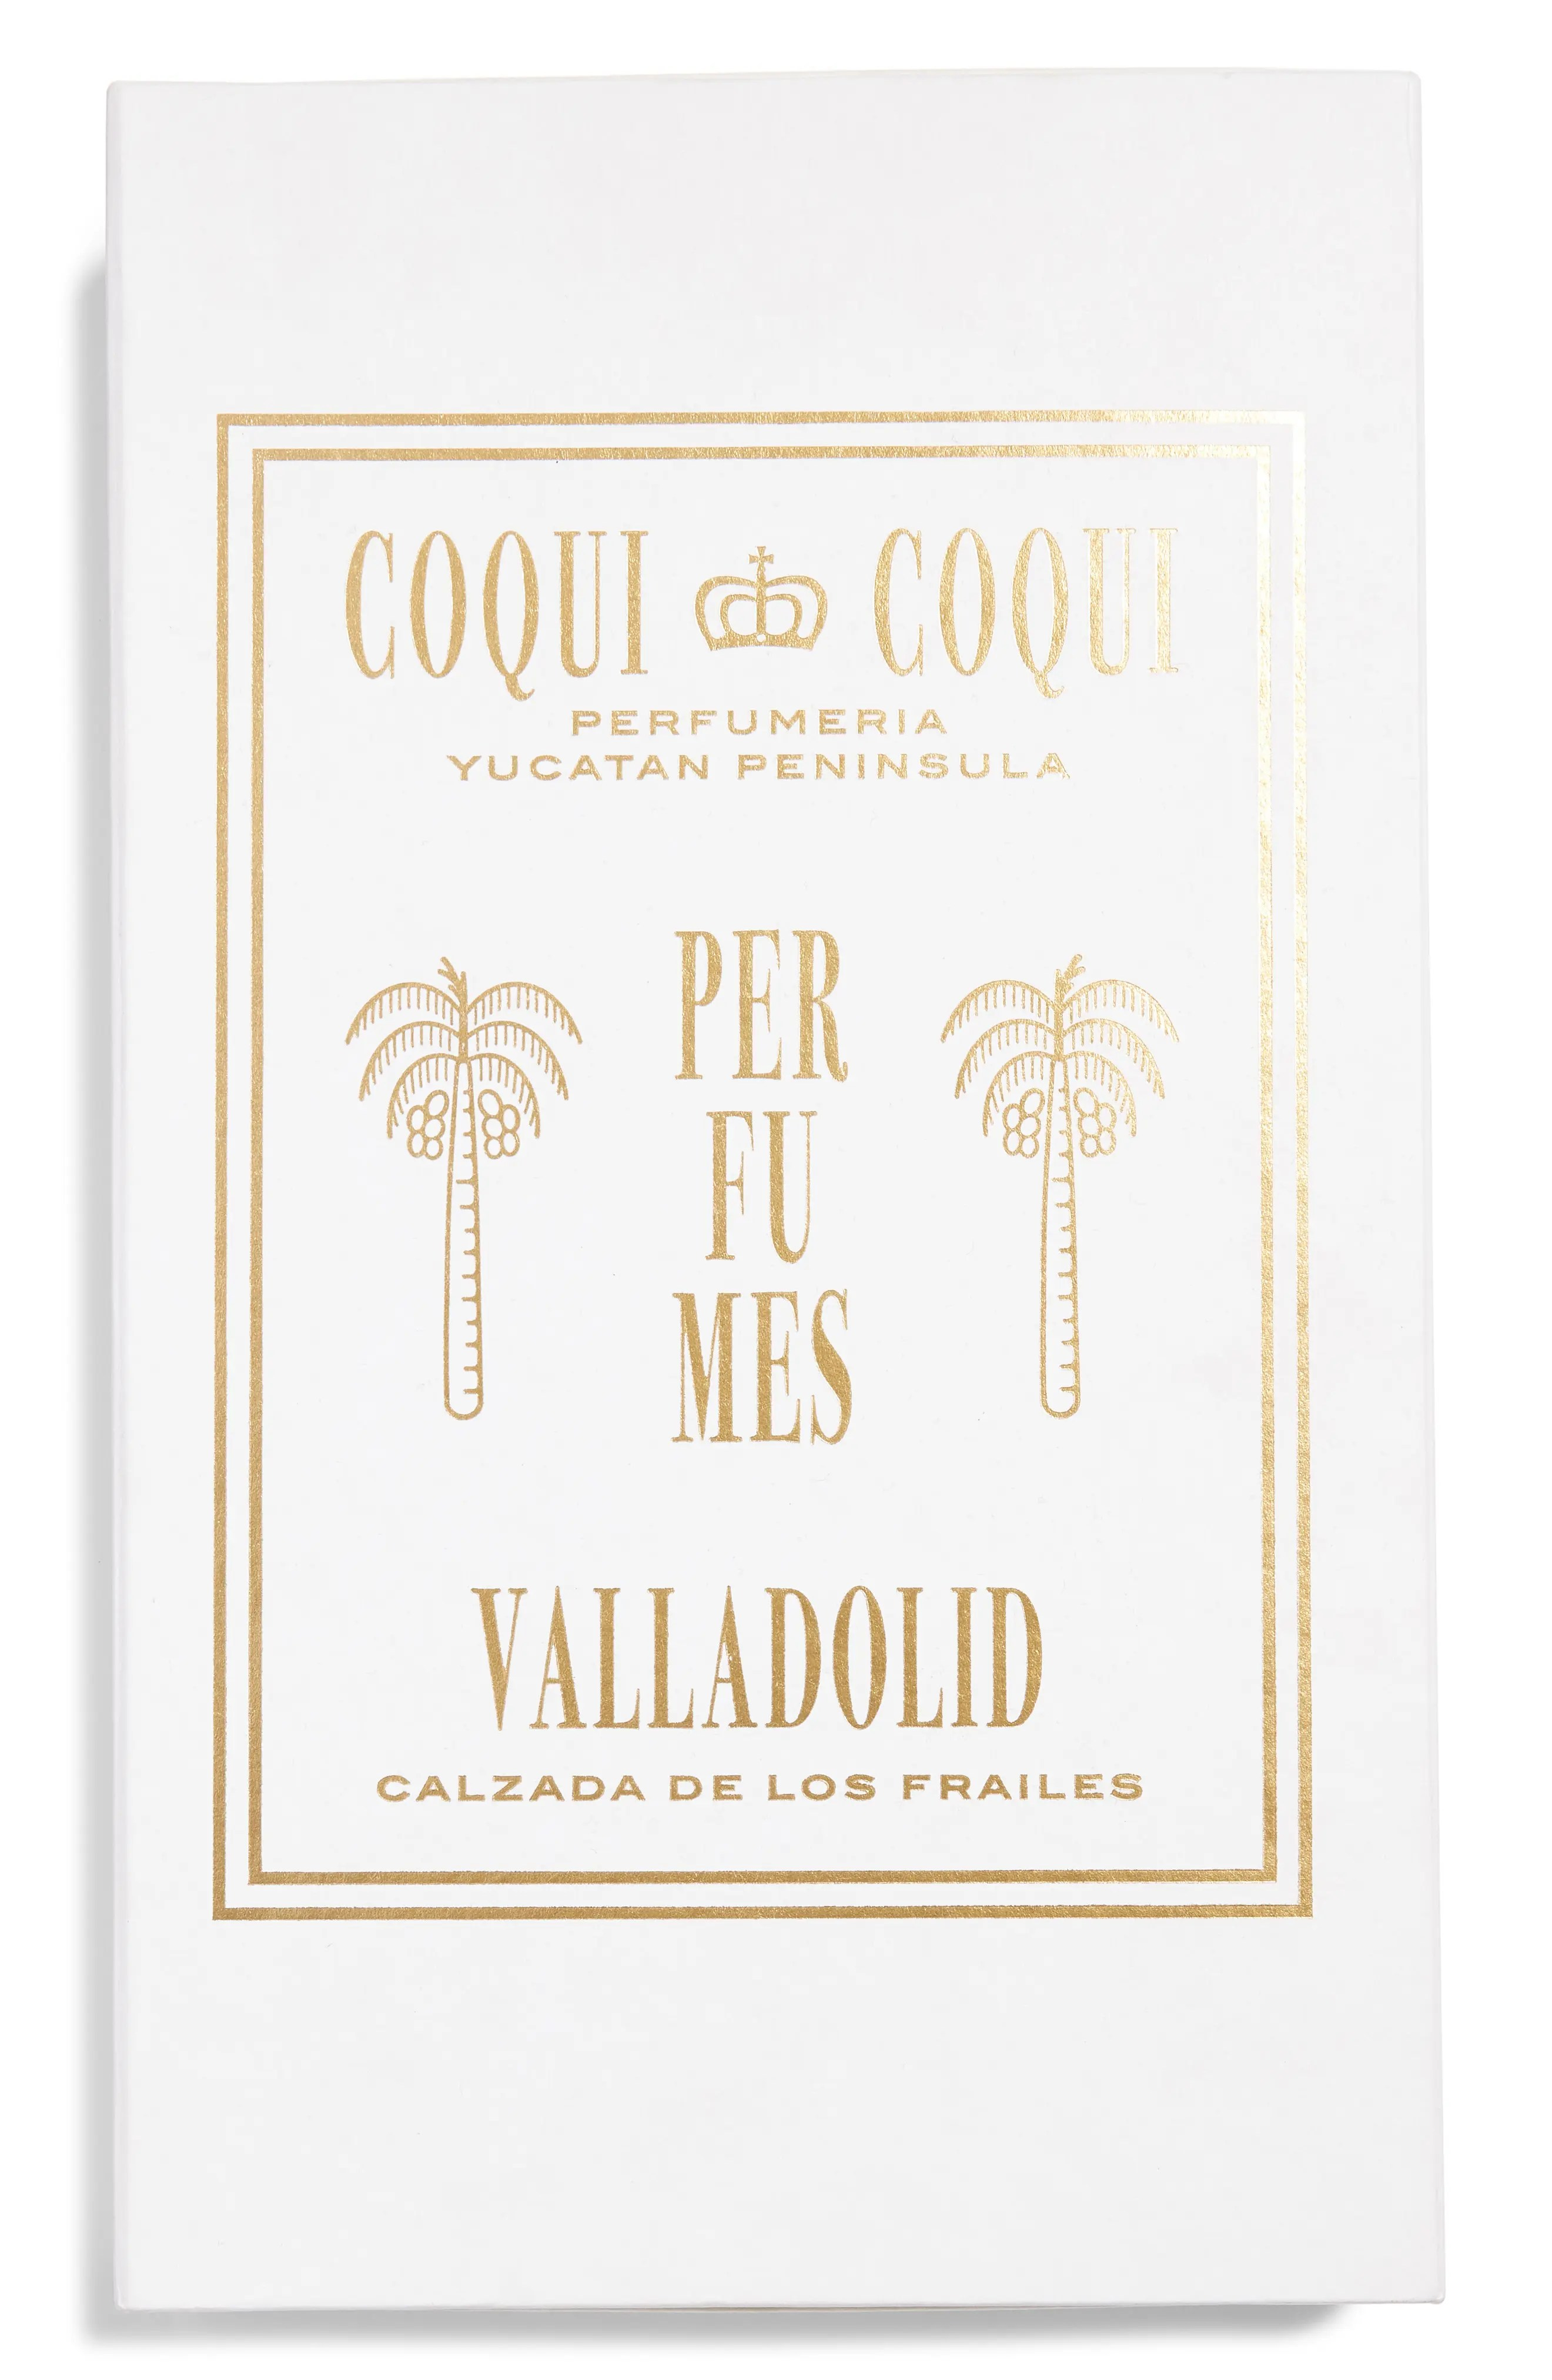 Maison Decor Valladolid Coqui Coqui Cew Beauty Awards Winners Nordstrom